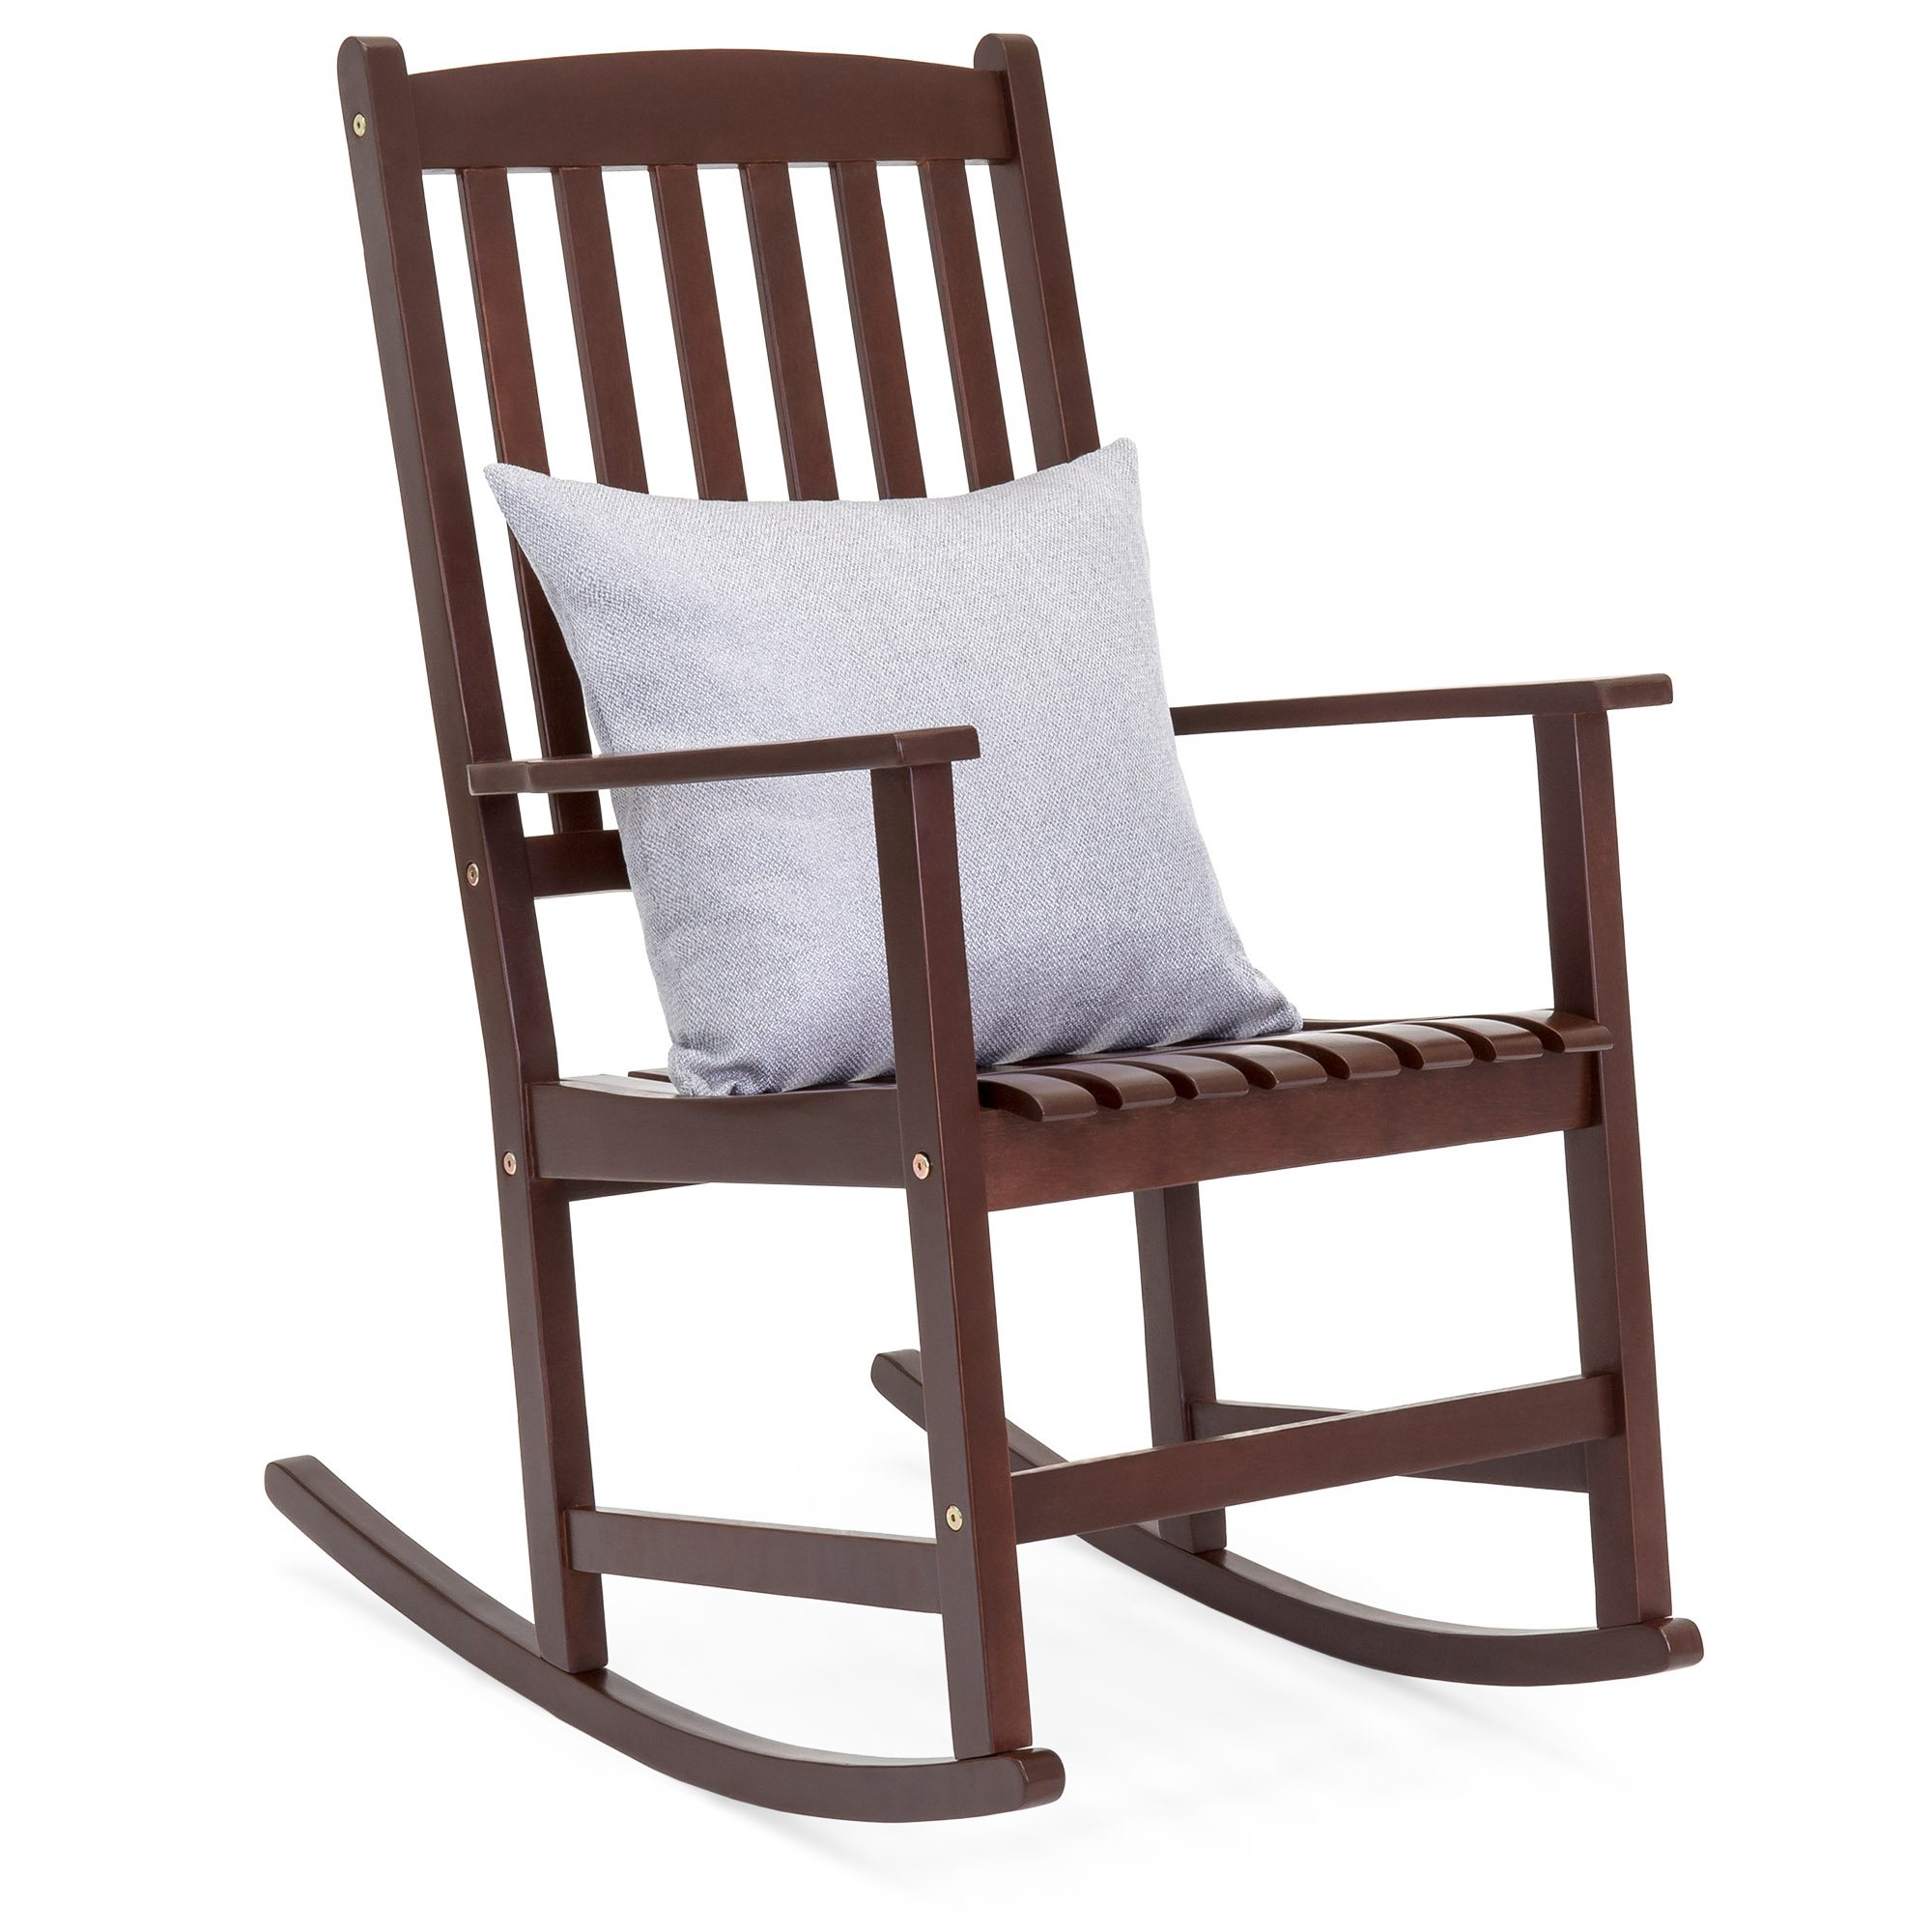 Best Choice Products Indoor Outdoor Traditional Wooden Rocking Chair Furniture w/ Slatted Seat and Backrest for Patio, Porch, Living Room, Home Decoration - Brown